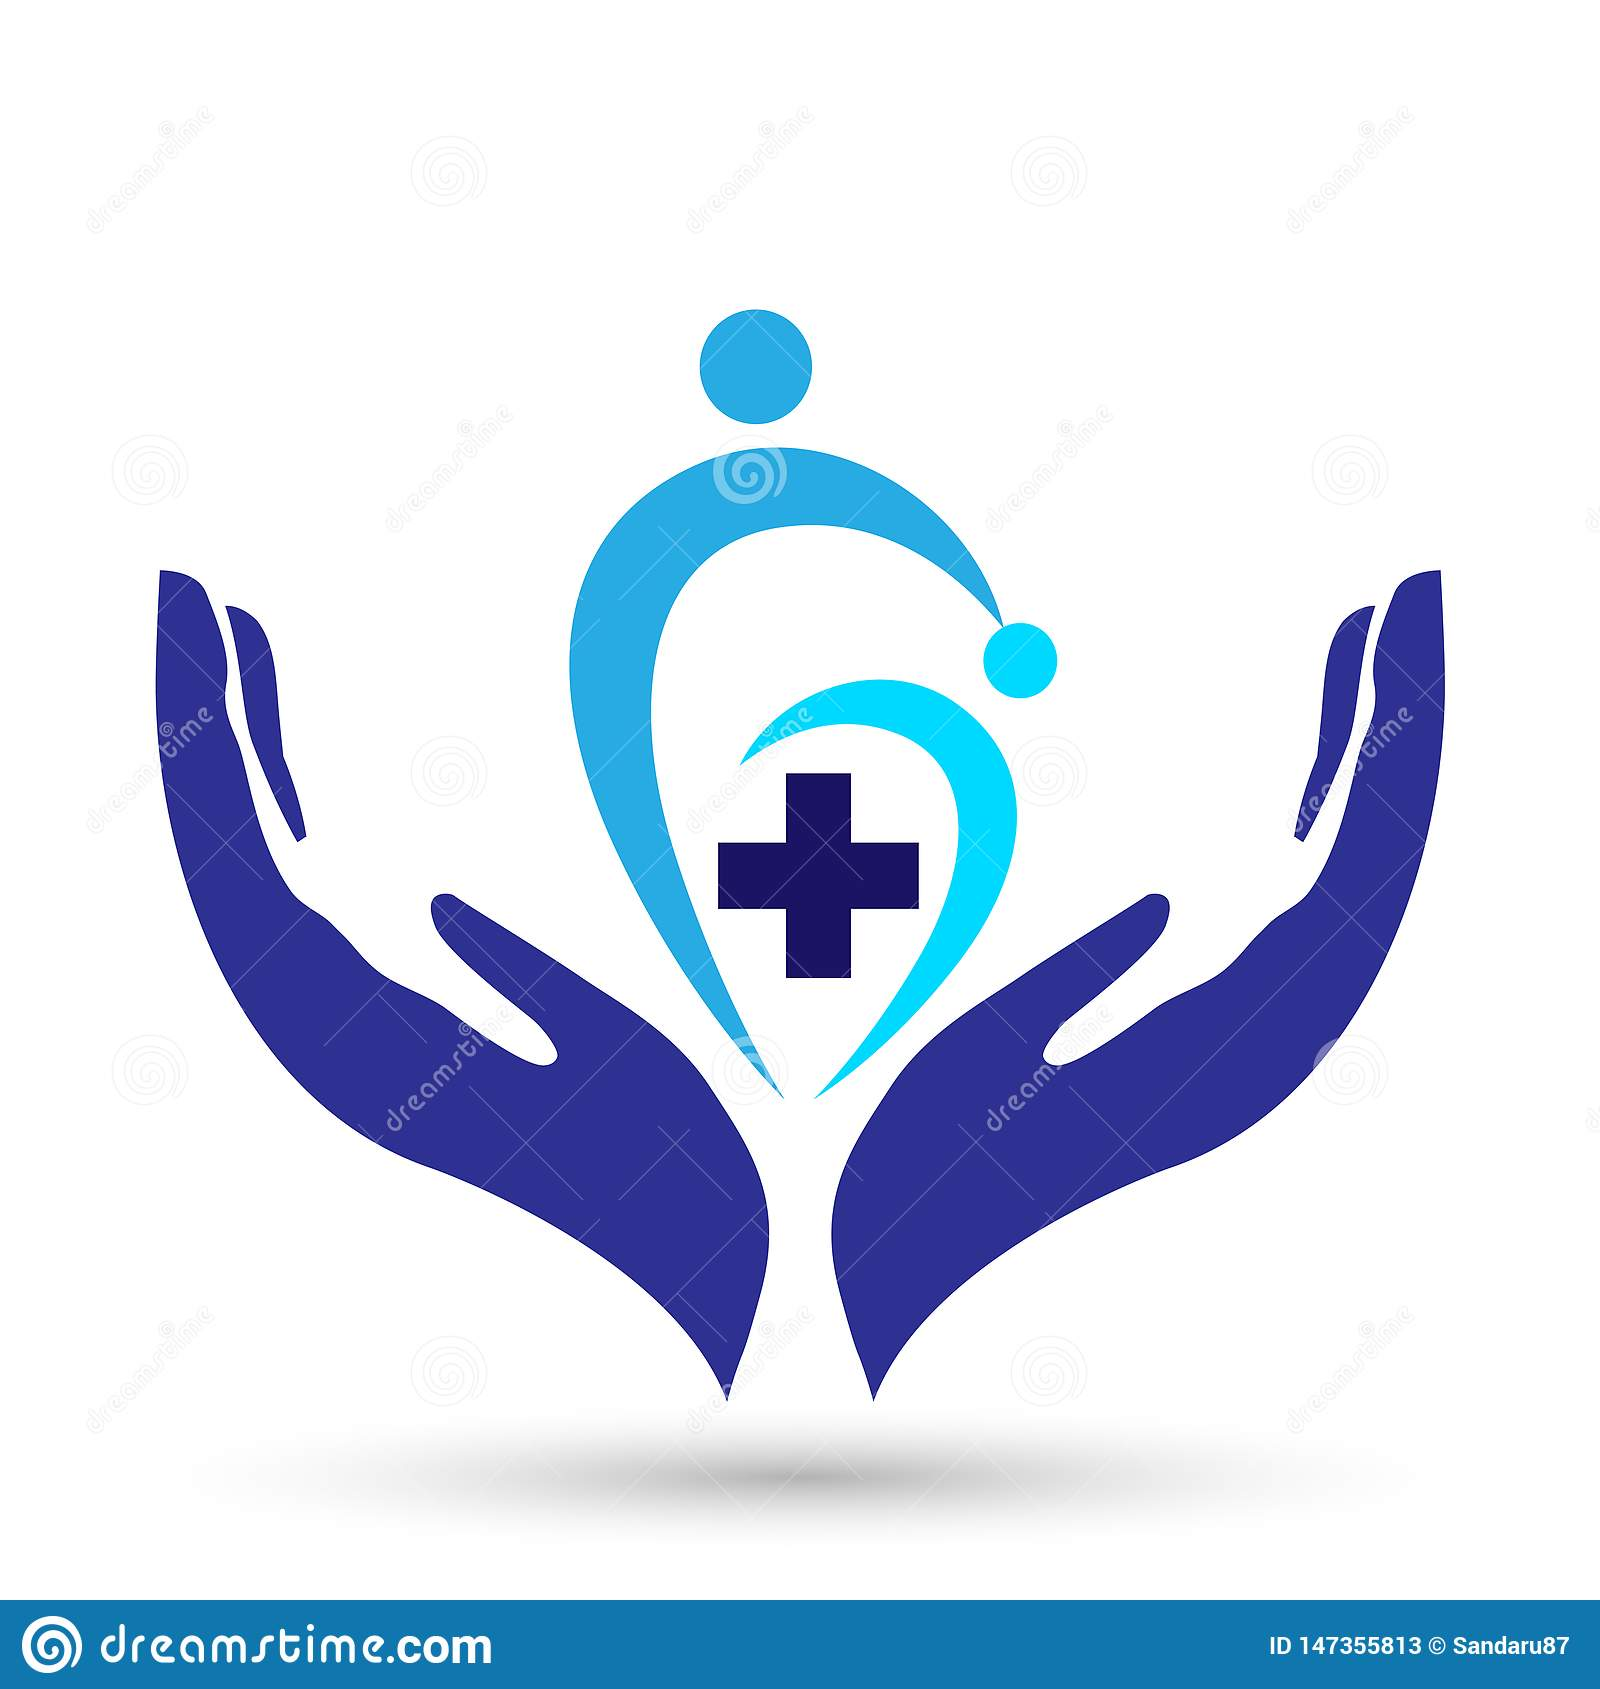 Family medical healthy life cross clinic hands care logo parent kids love, protect symbol icon design vector on white background